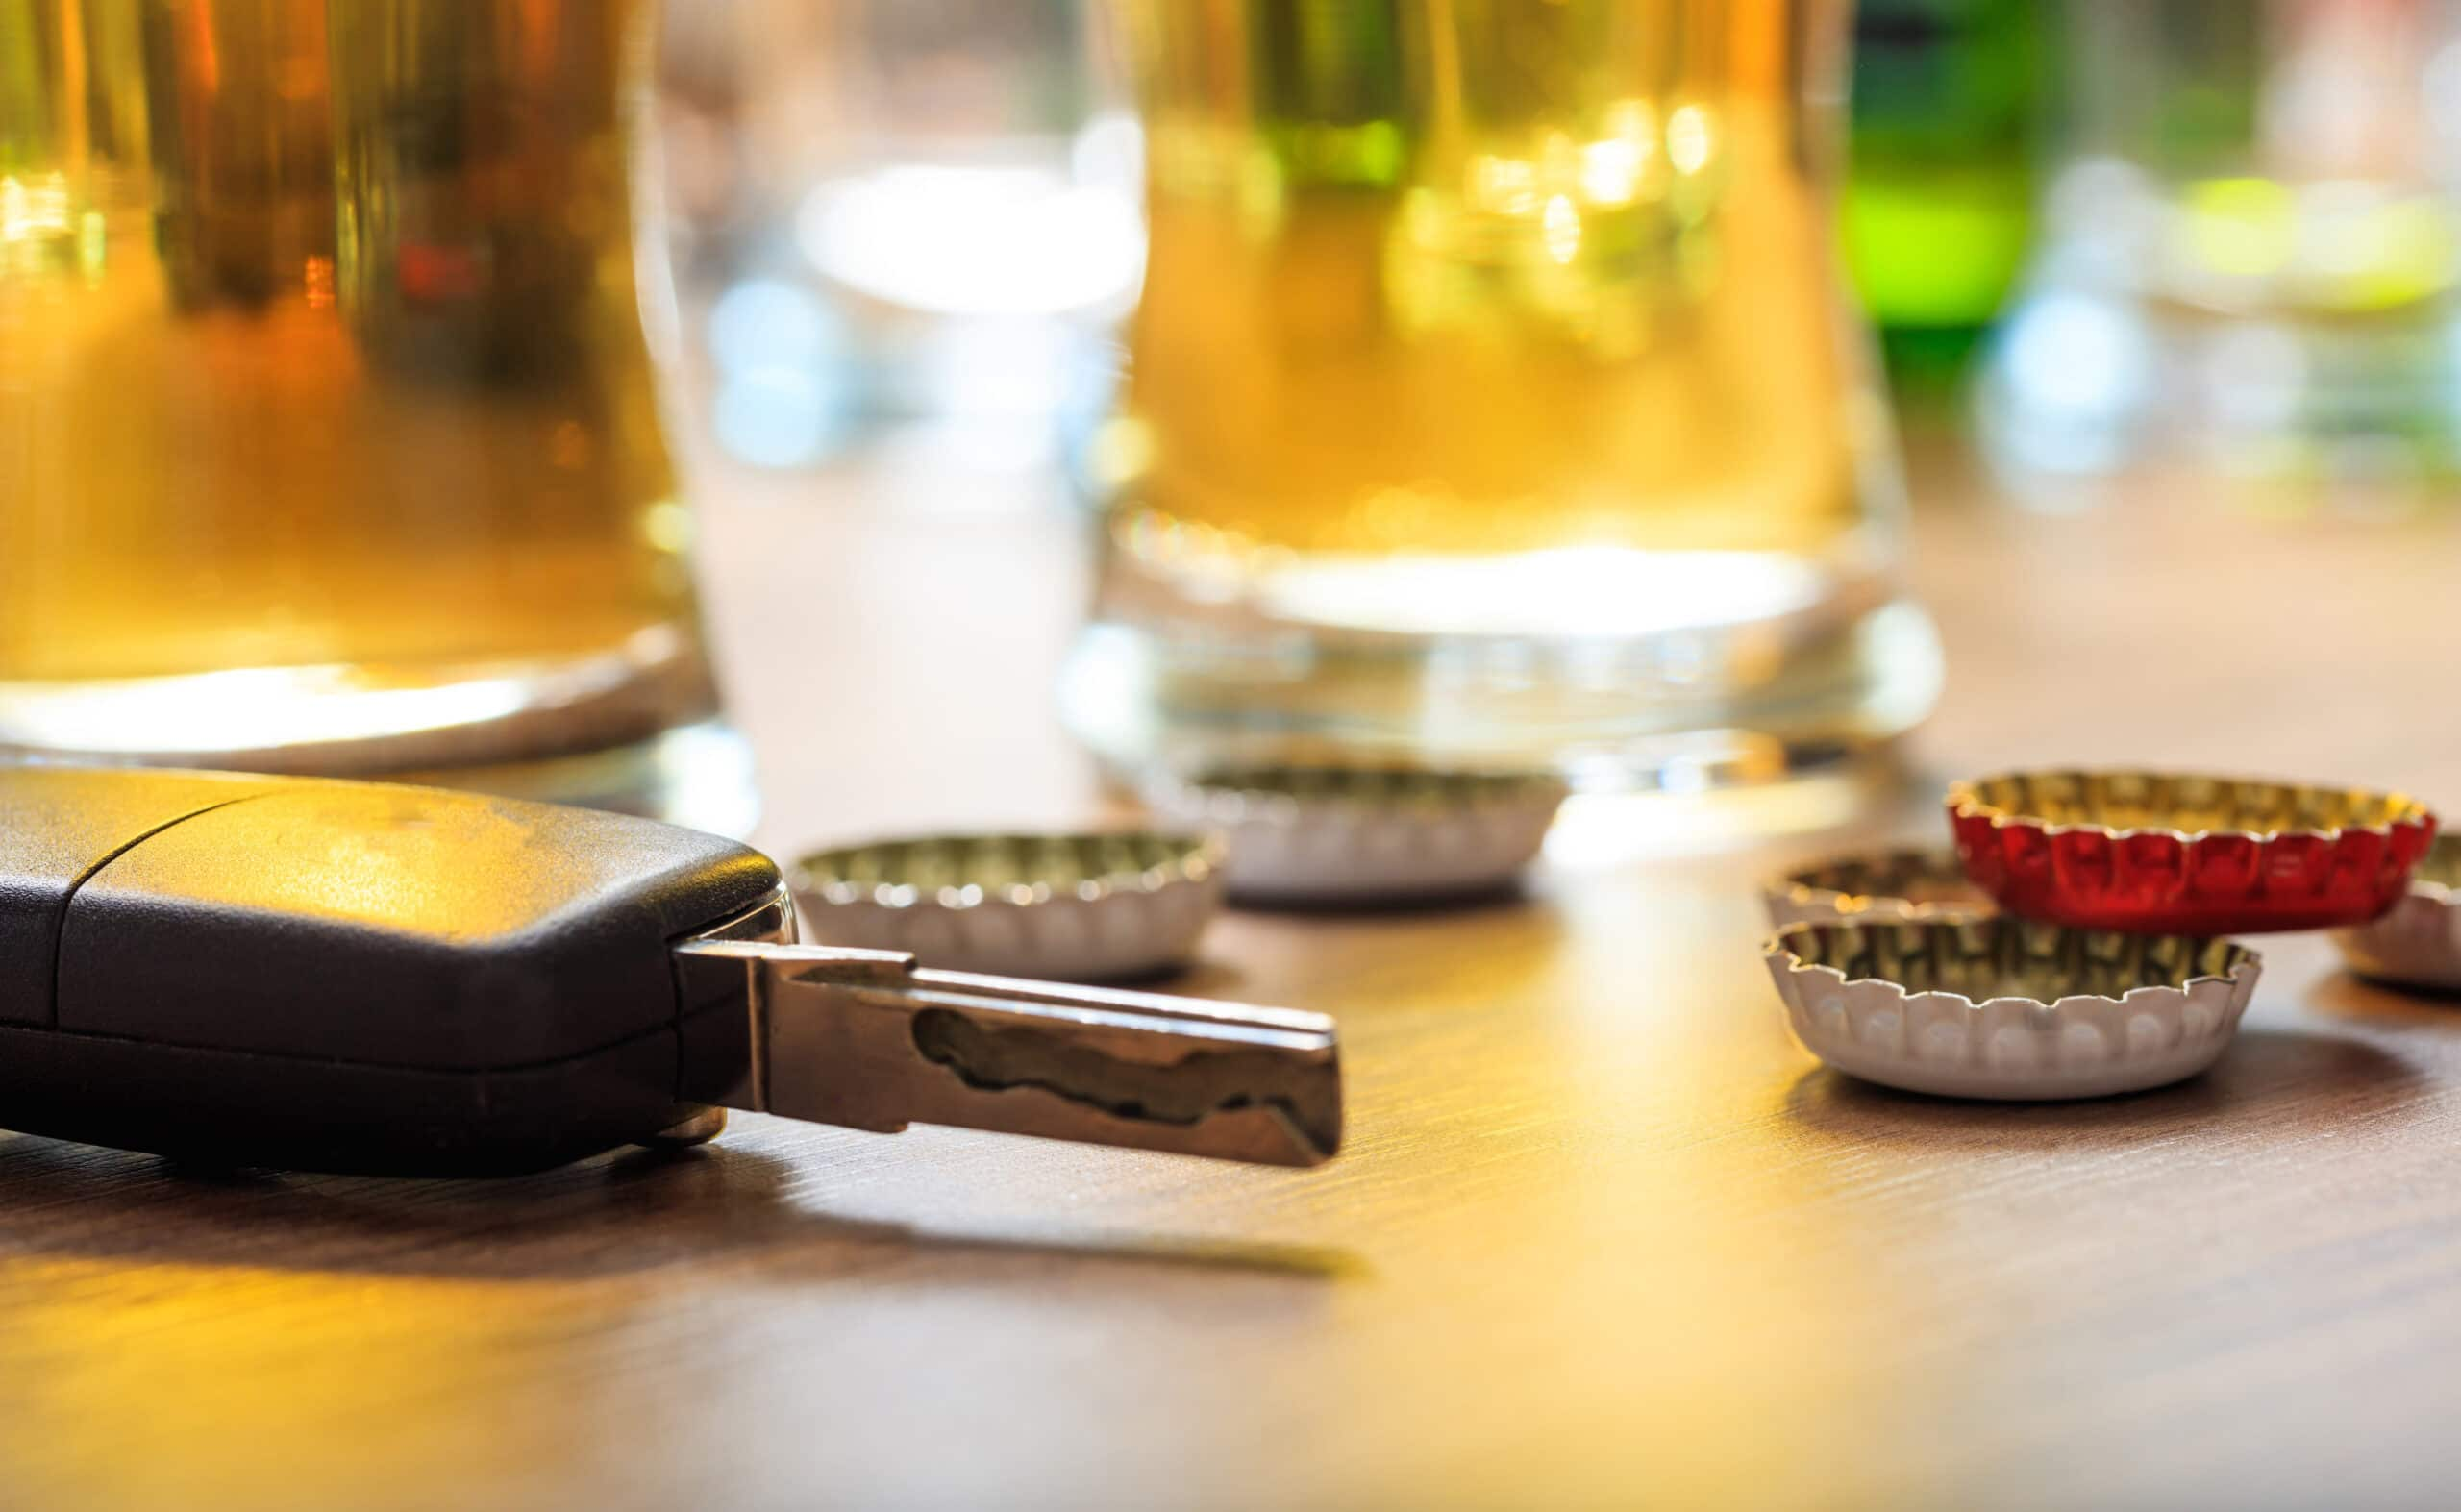 A car key is positioned next to beer bottle caps, implying the decision to drink and drive.